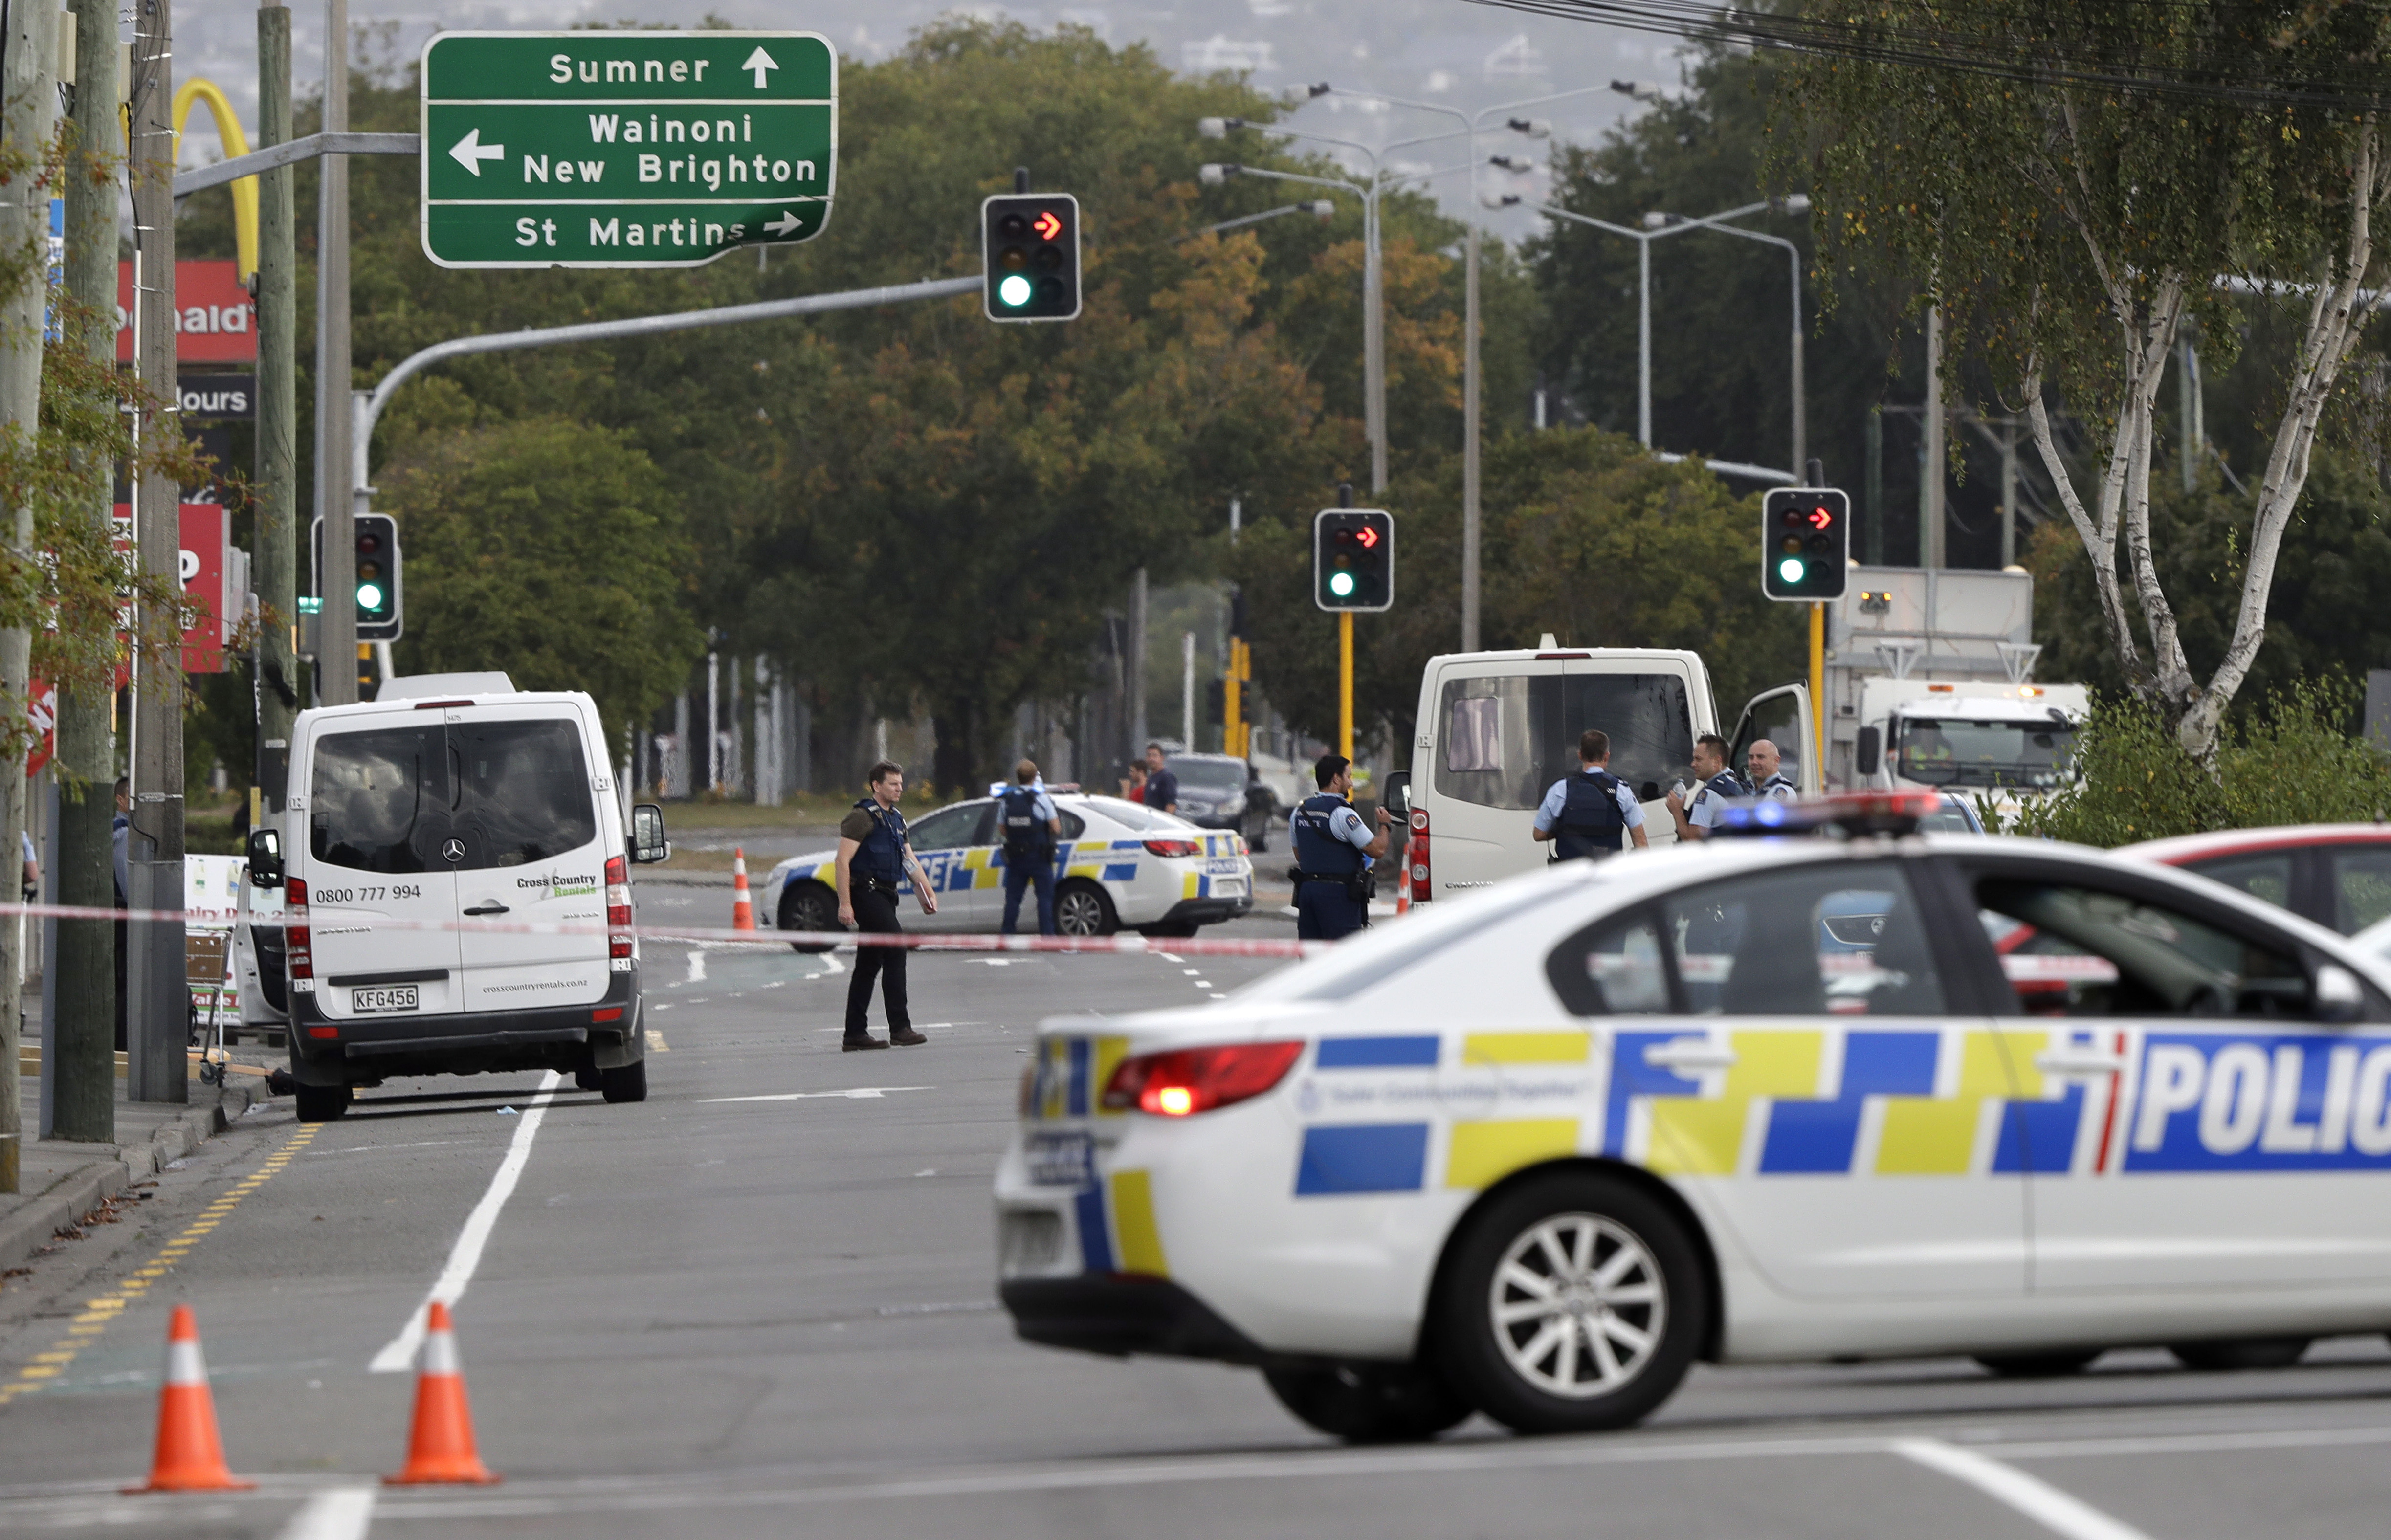 New Zealand Mosque: Mass Shootings At New Zealand Mosques Kill 49; 1 Man Charged